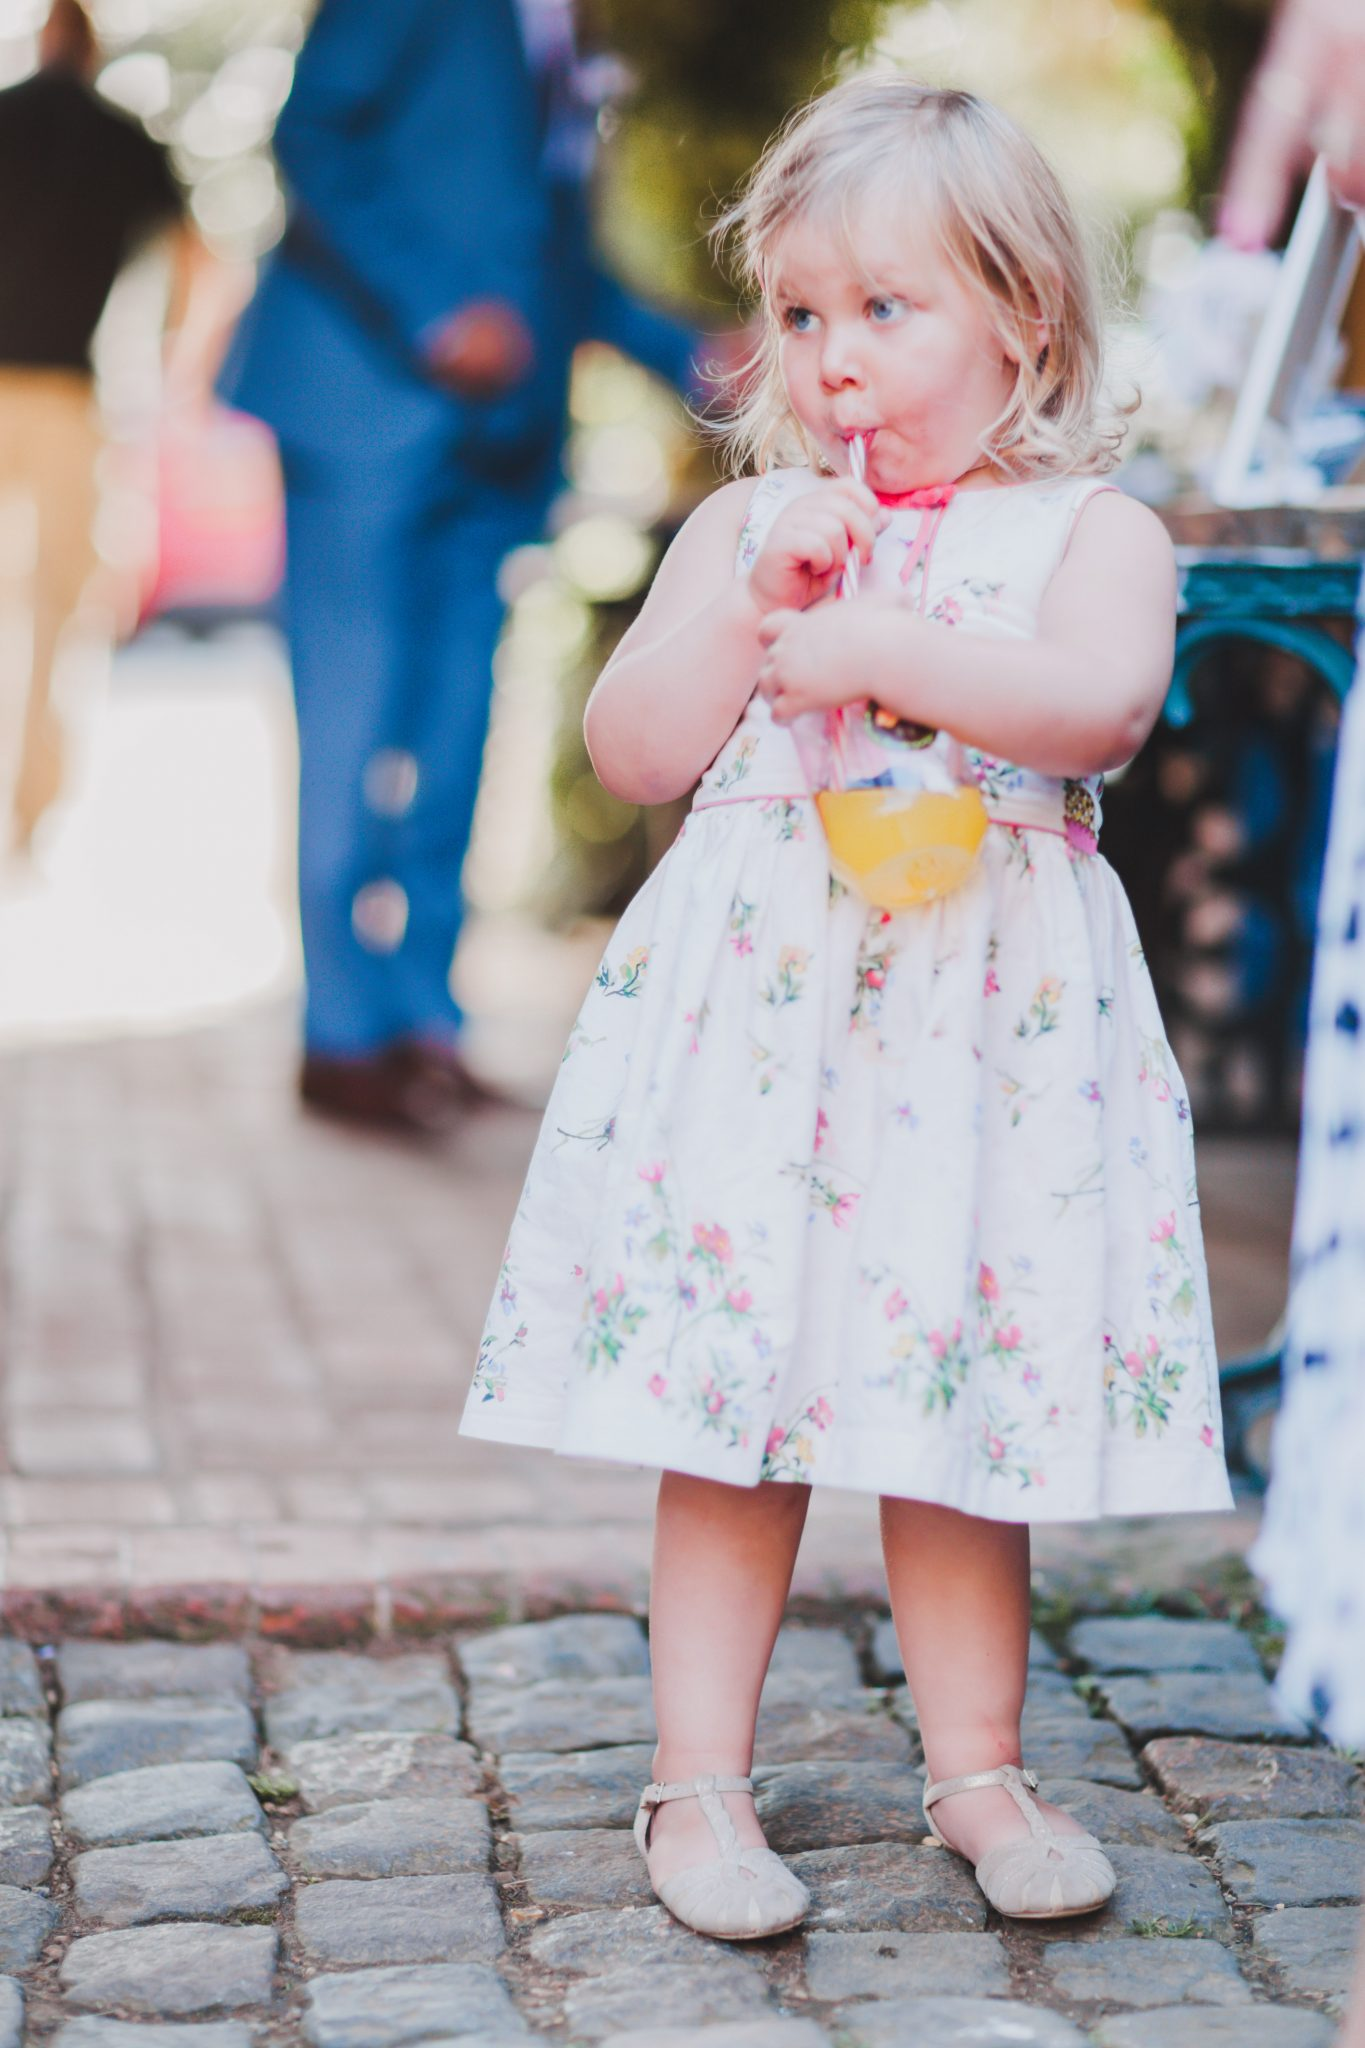 Little girl sipping drink from bottle at wedding